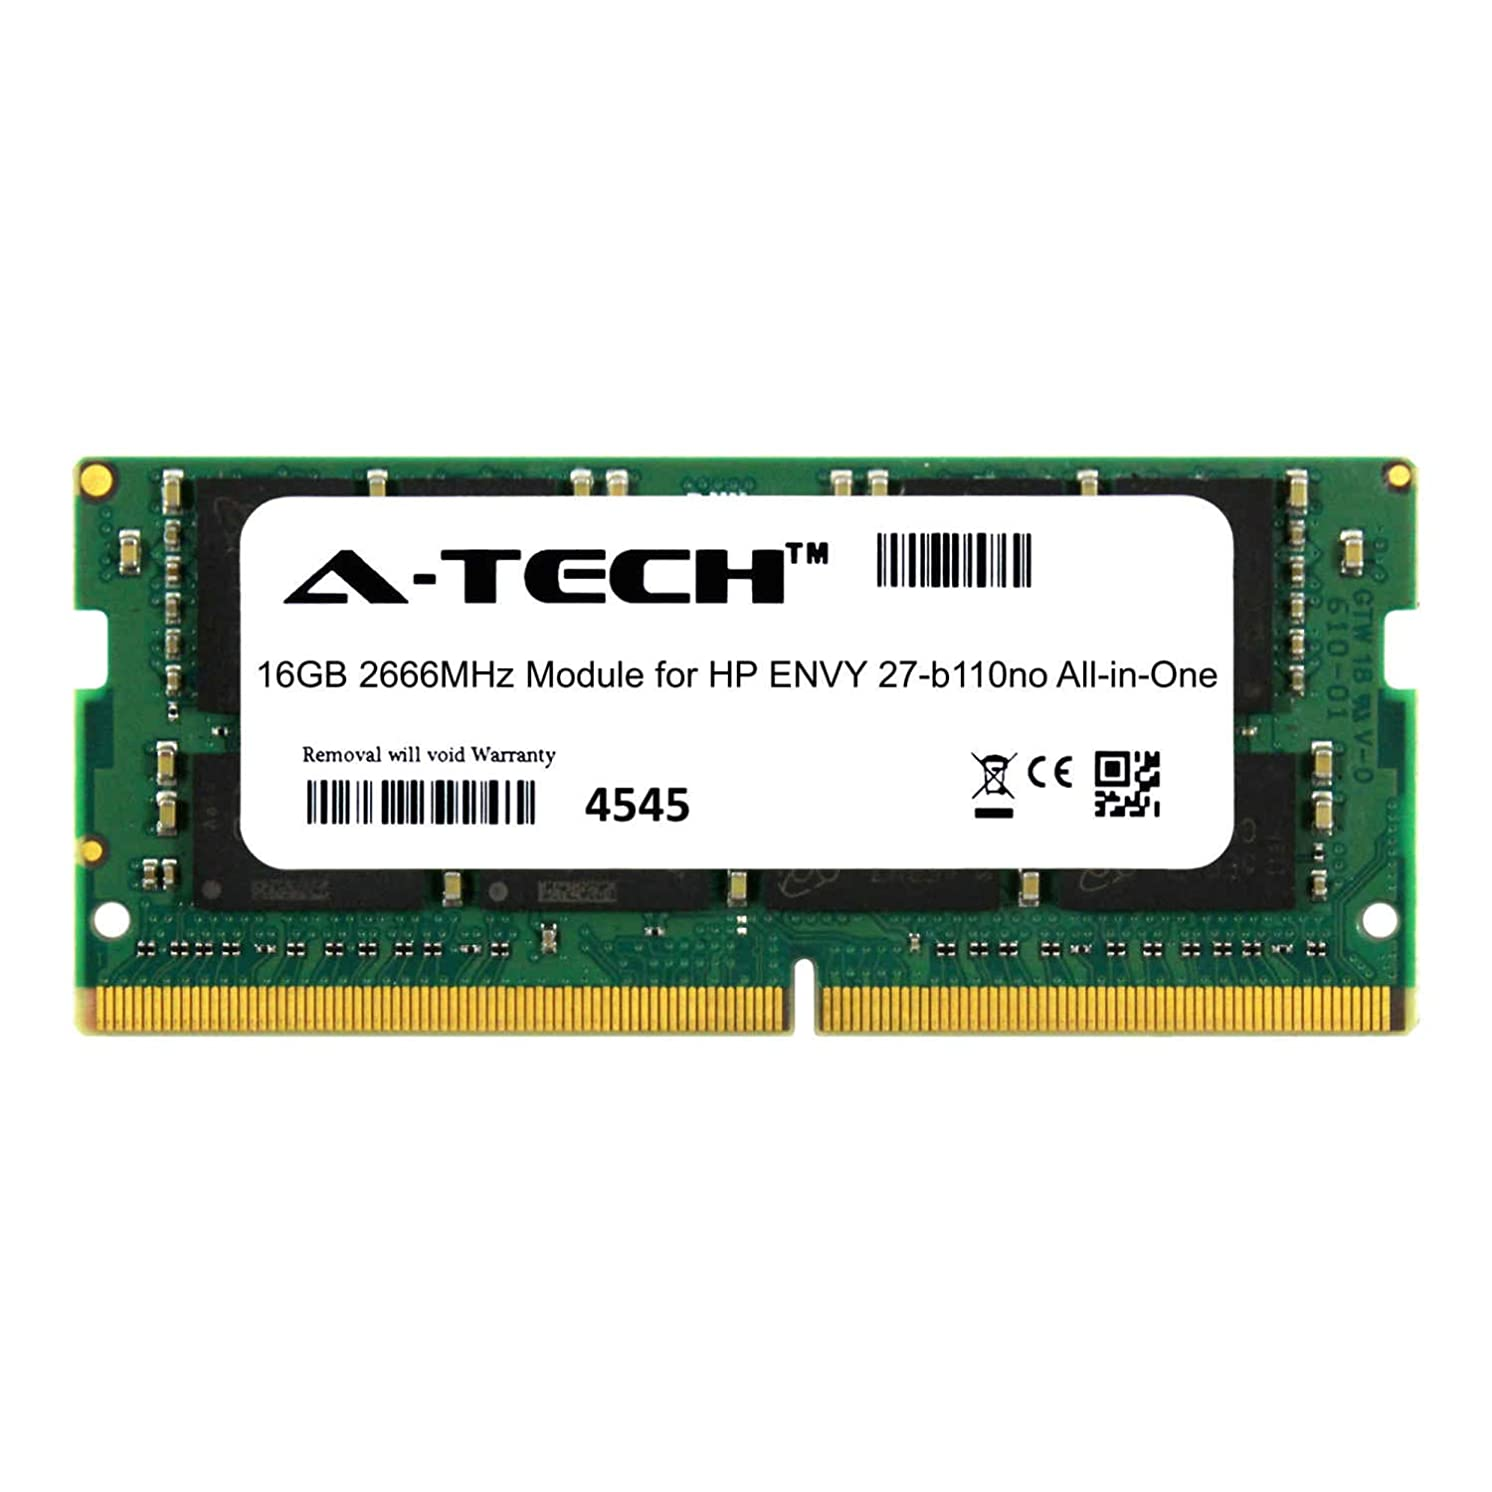 A-Tech 16GB Module for HP Envy 27-b110no All-in-One (AIO) Compatible DDR4 2666Mhz Memory Ram (ATMS273571A25832X1)